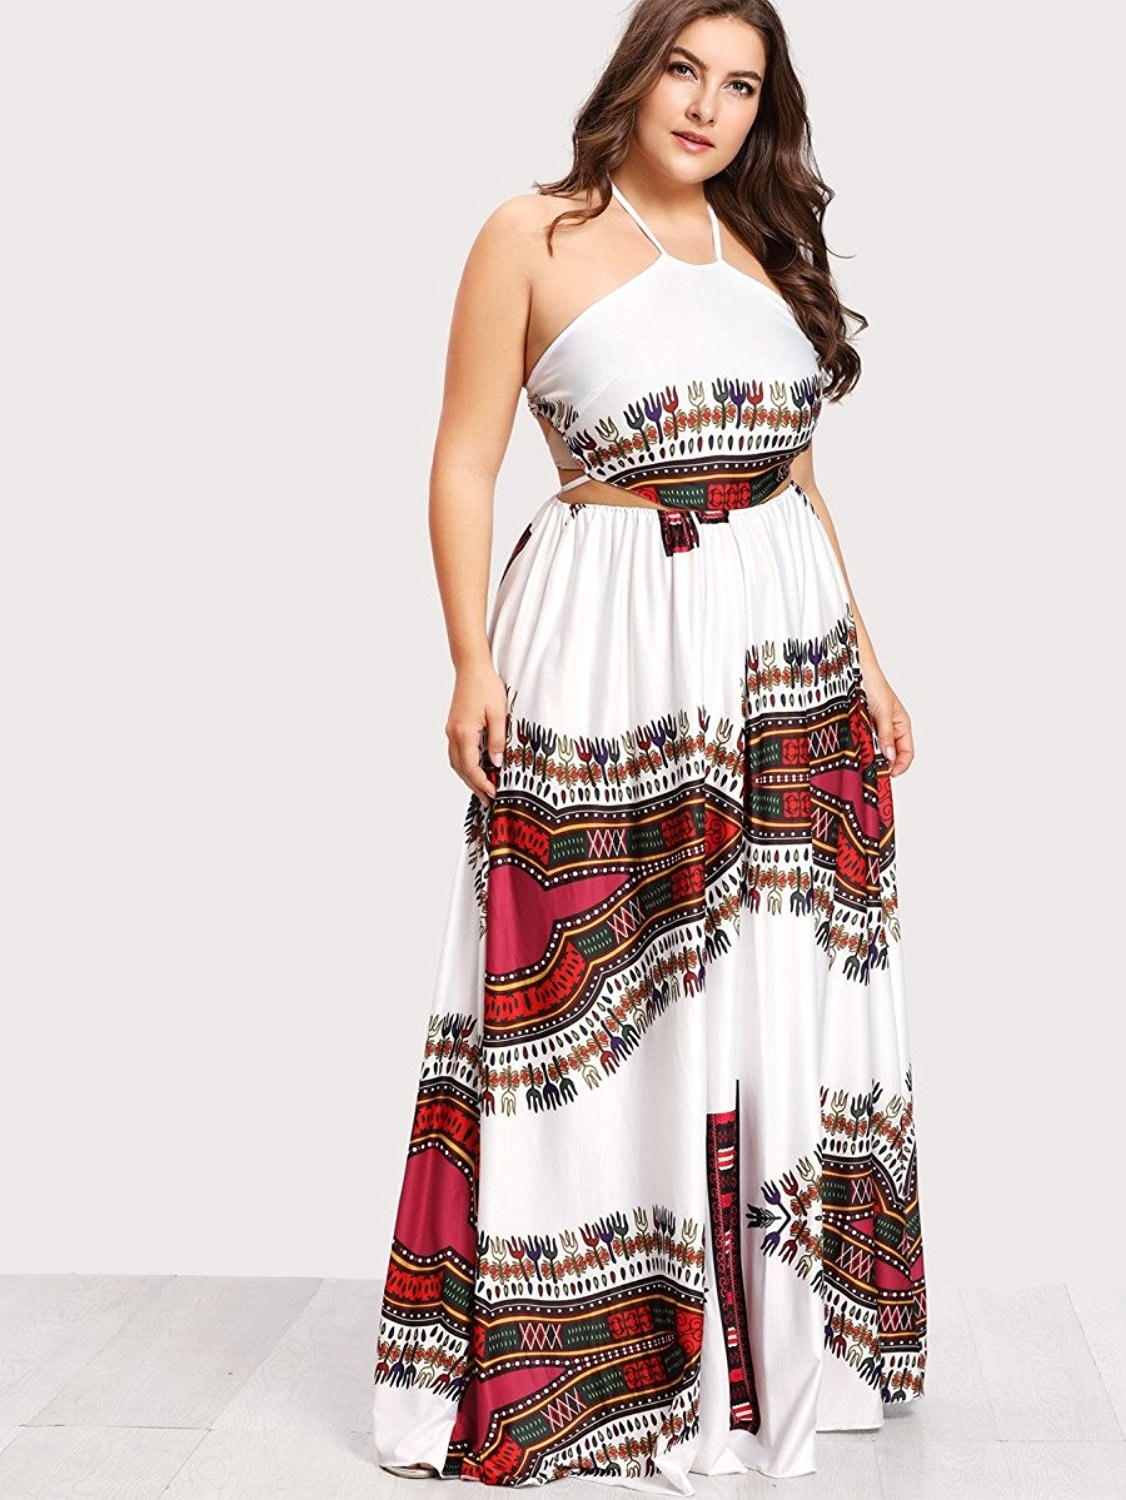 7300a007e5c9 A boho halter dress to wear when you re trying to only make dramatic  entrances this spring.